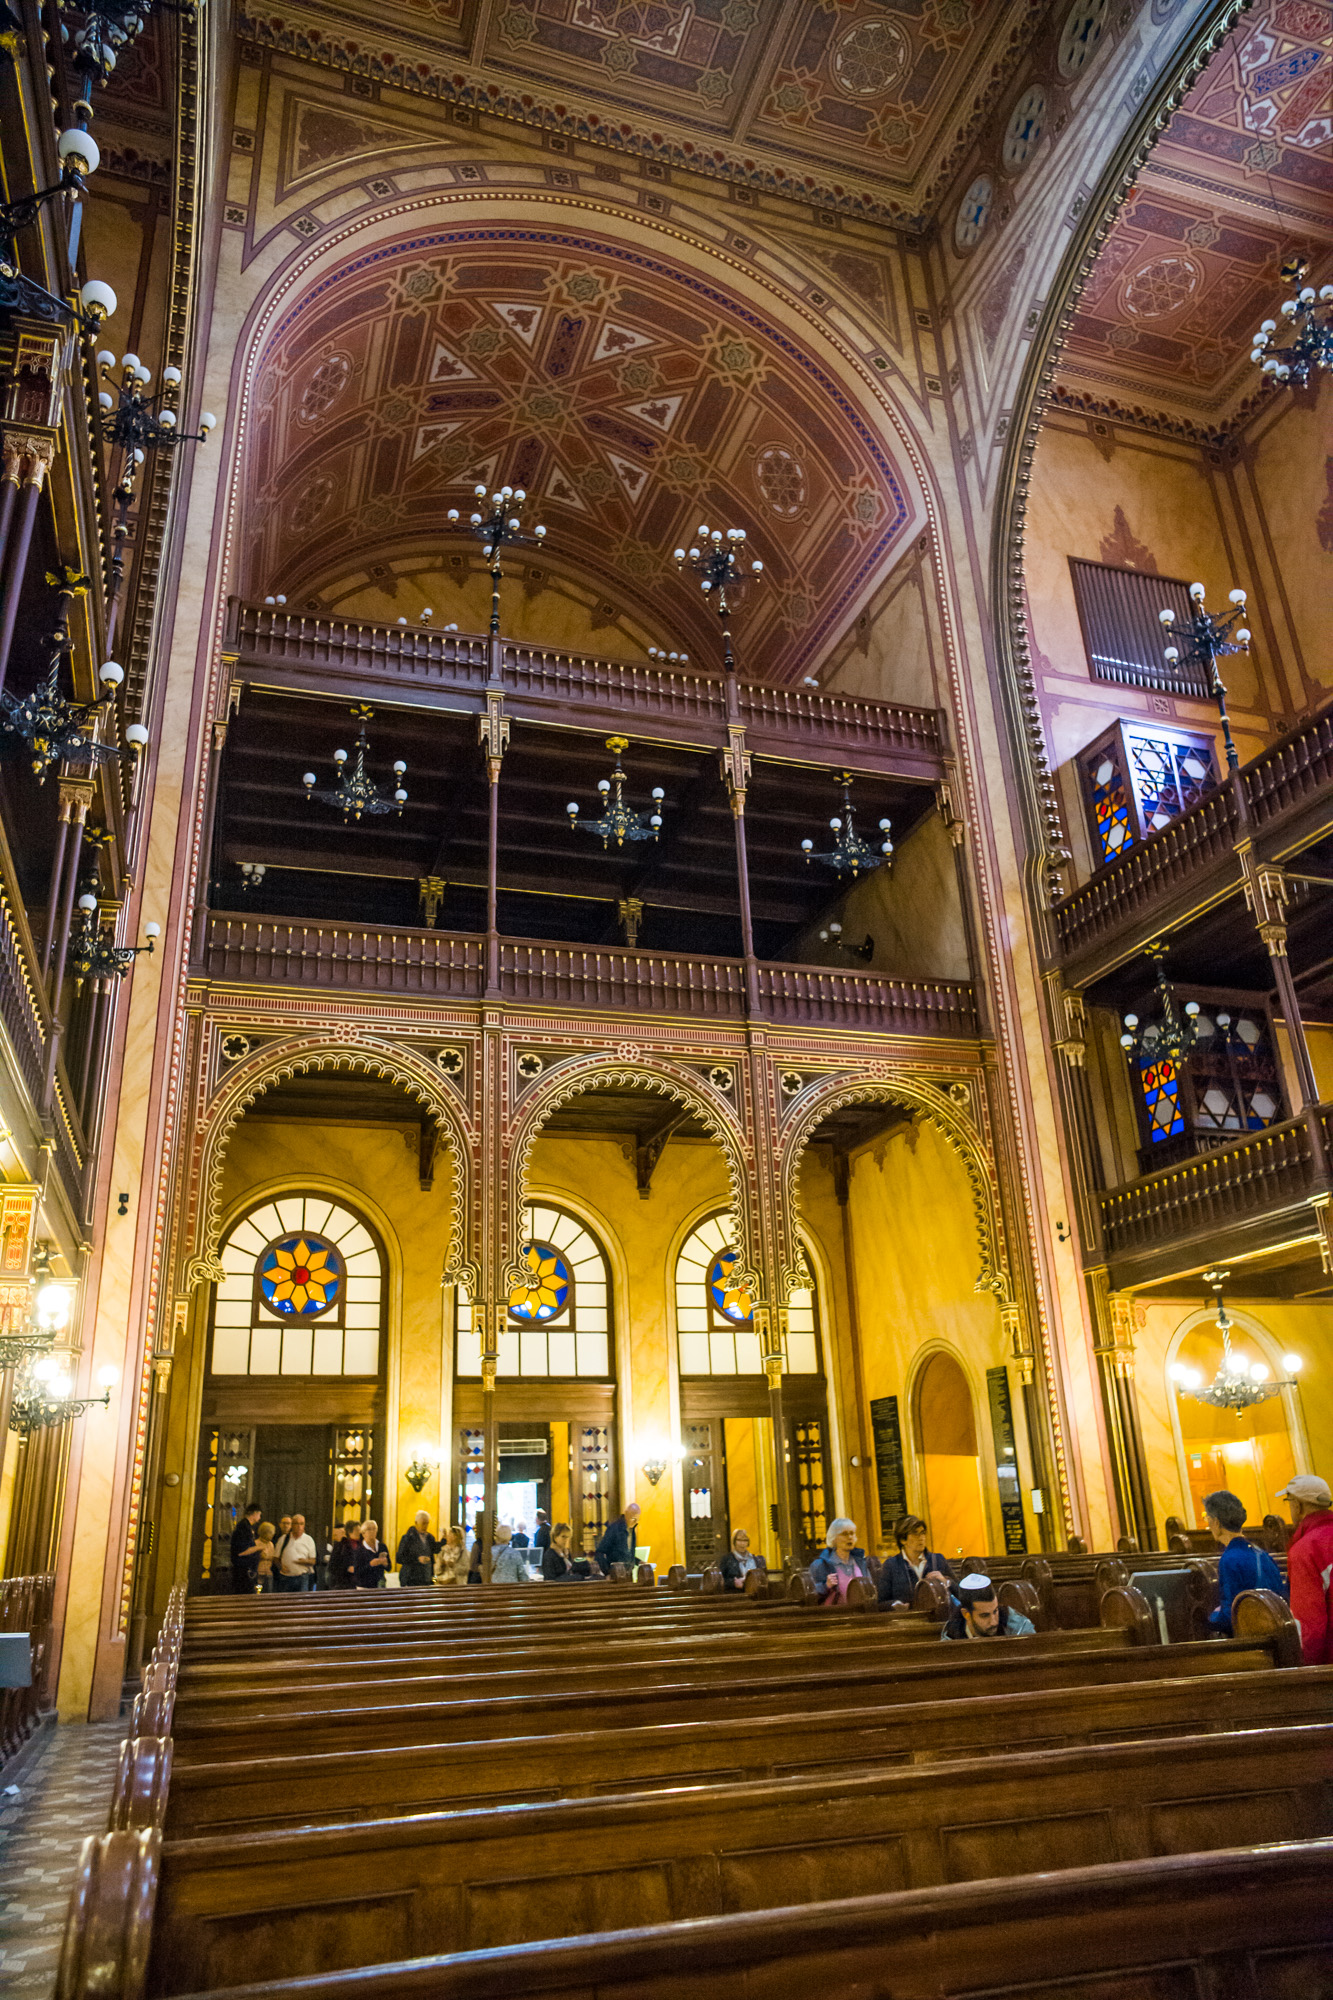 Beautiful architecture inside of Dohány Street Synagogue